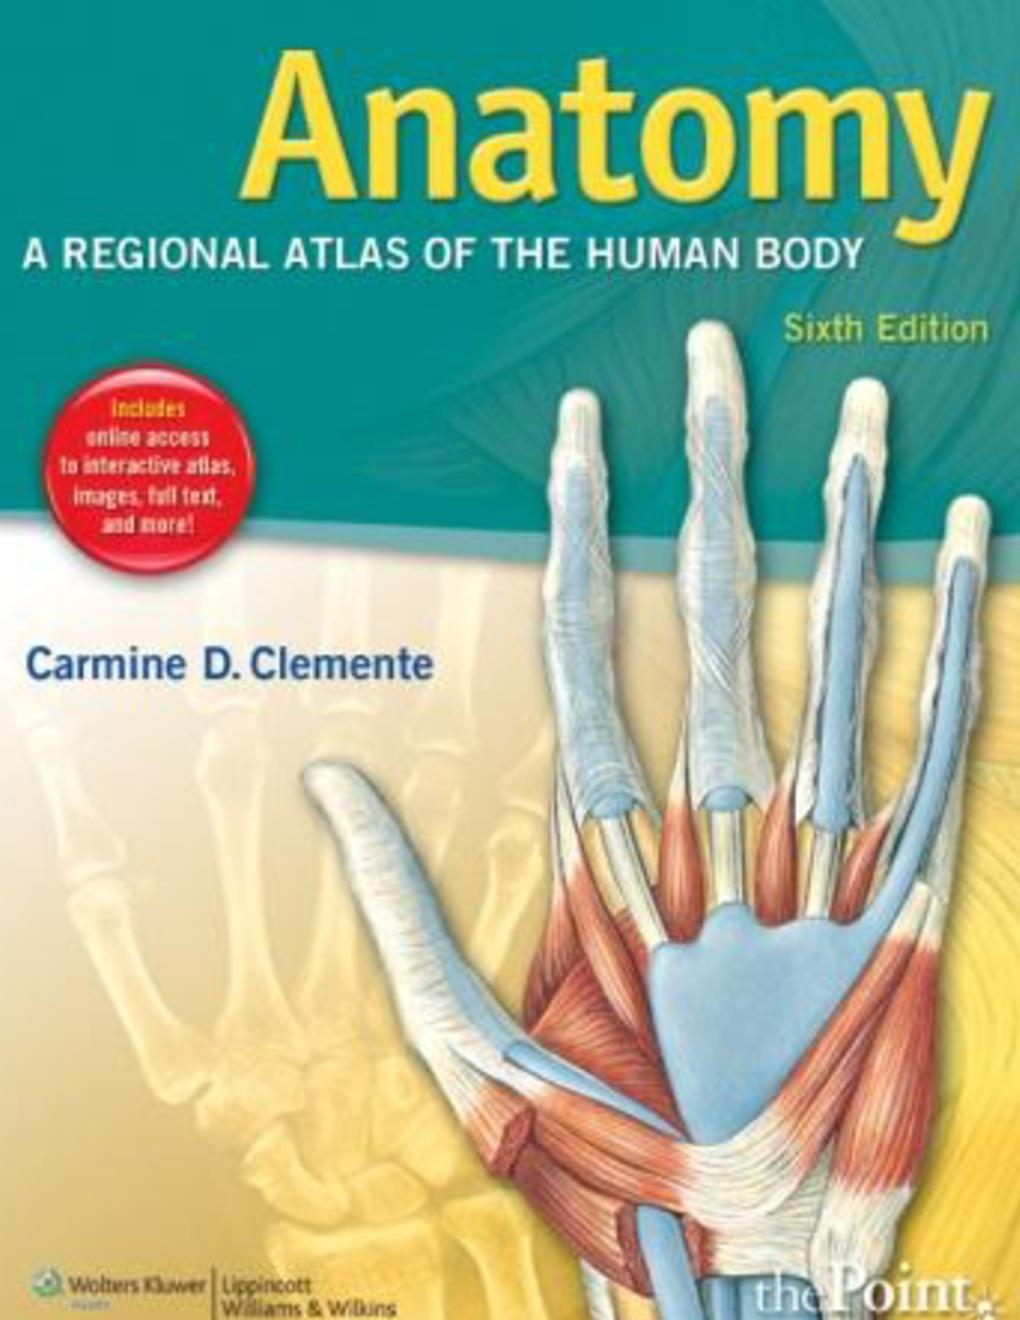 Anatomy A Regional Atlas Of The Human Body 6th Ed C Clemente